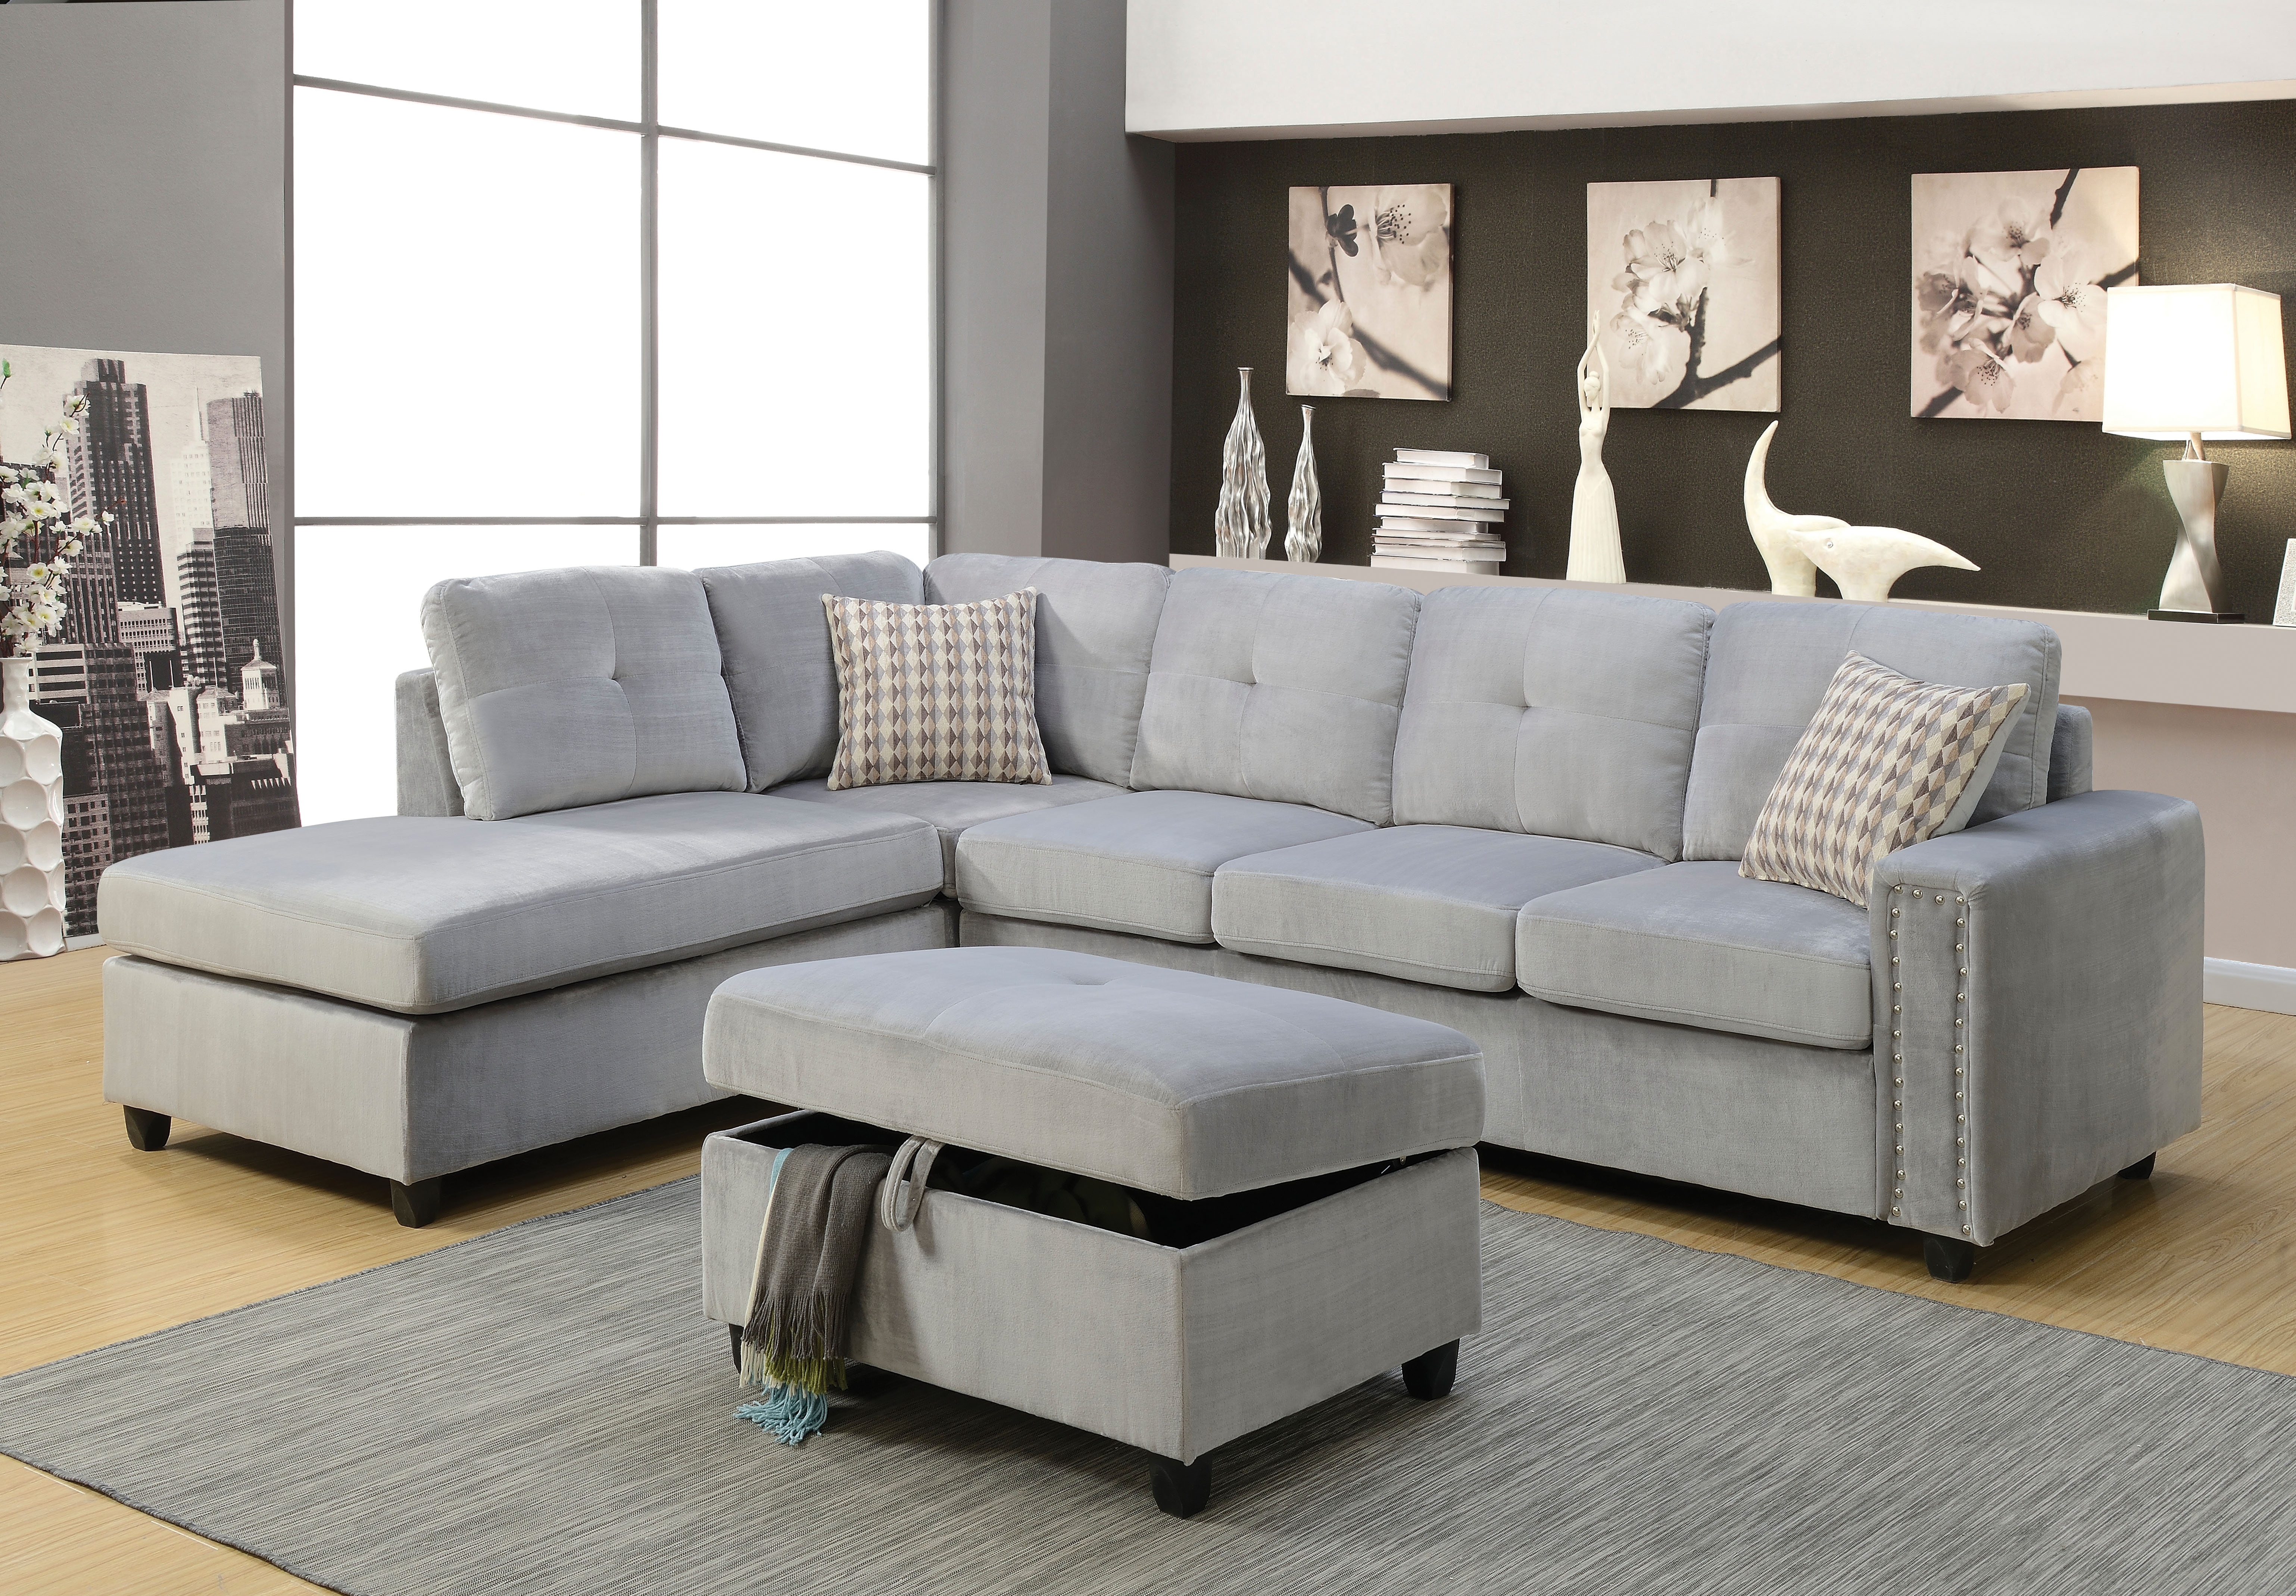 sleeper gray nj san modern light twin bed francisco sofa sectional leather sectionals